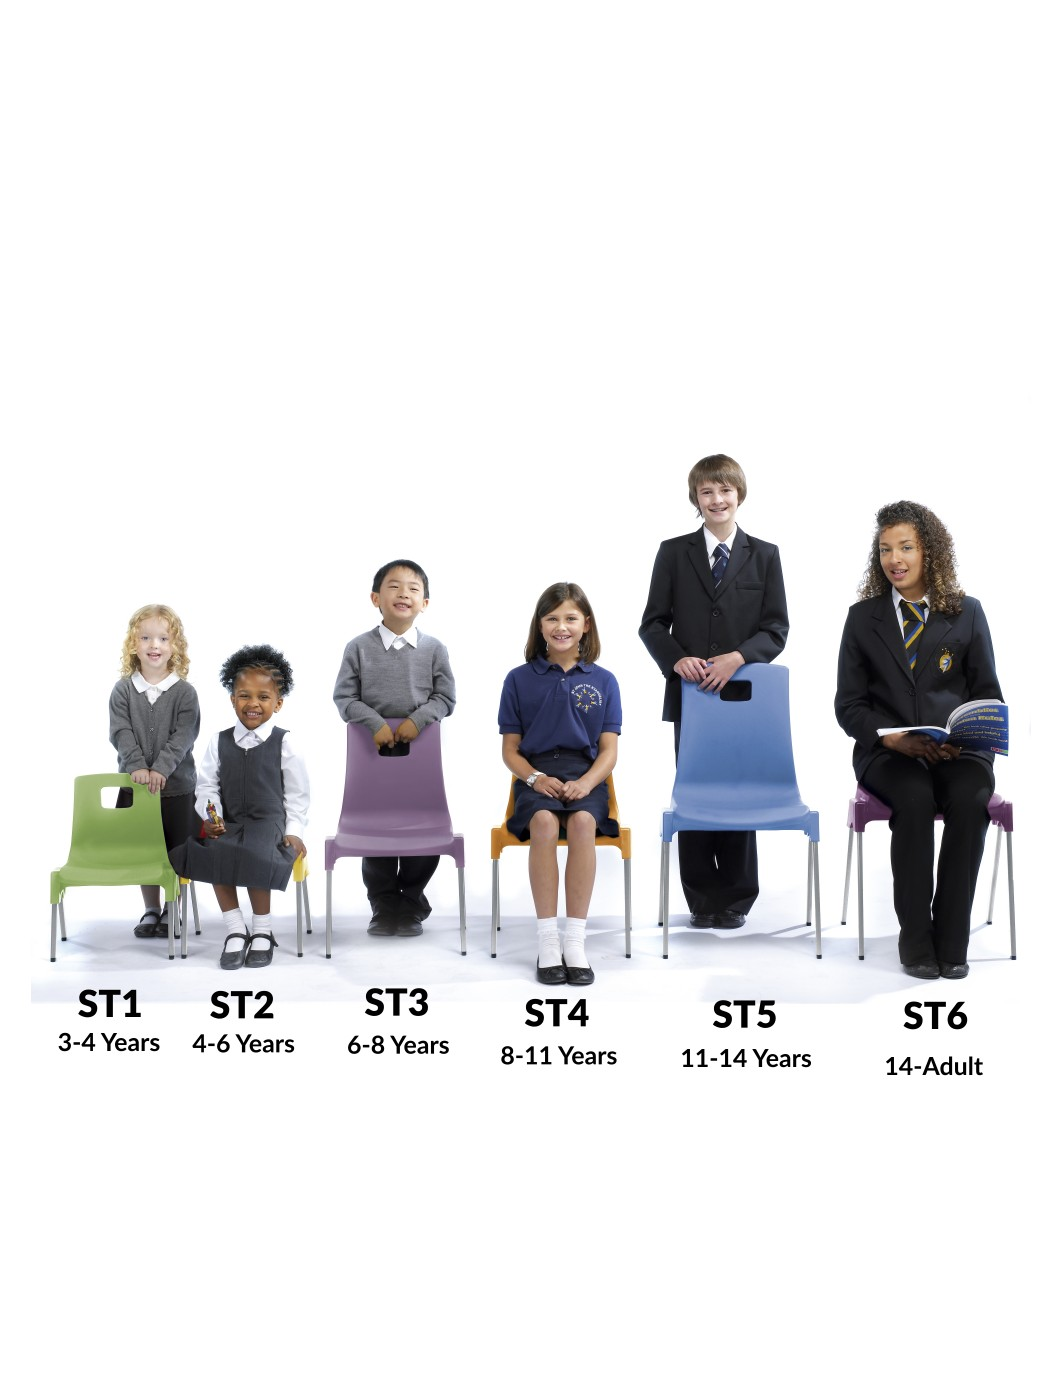 Metalliform ST Chairs - Age 6-8 Years Polypropylene Classroom Chairs ST3